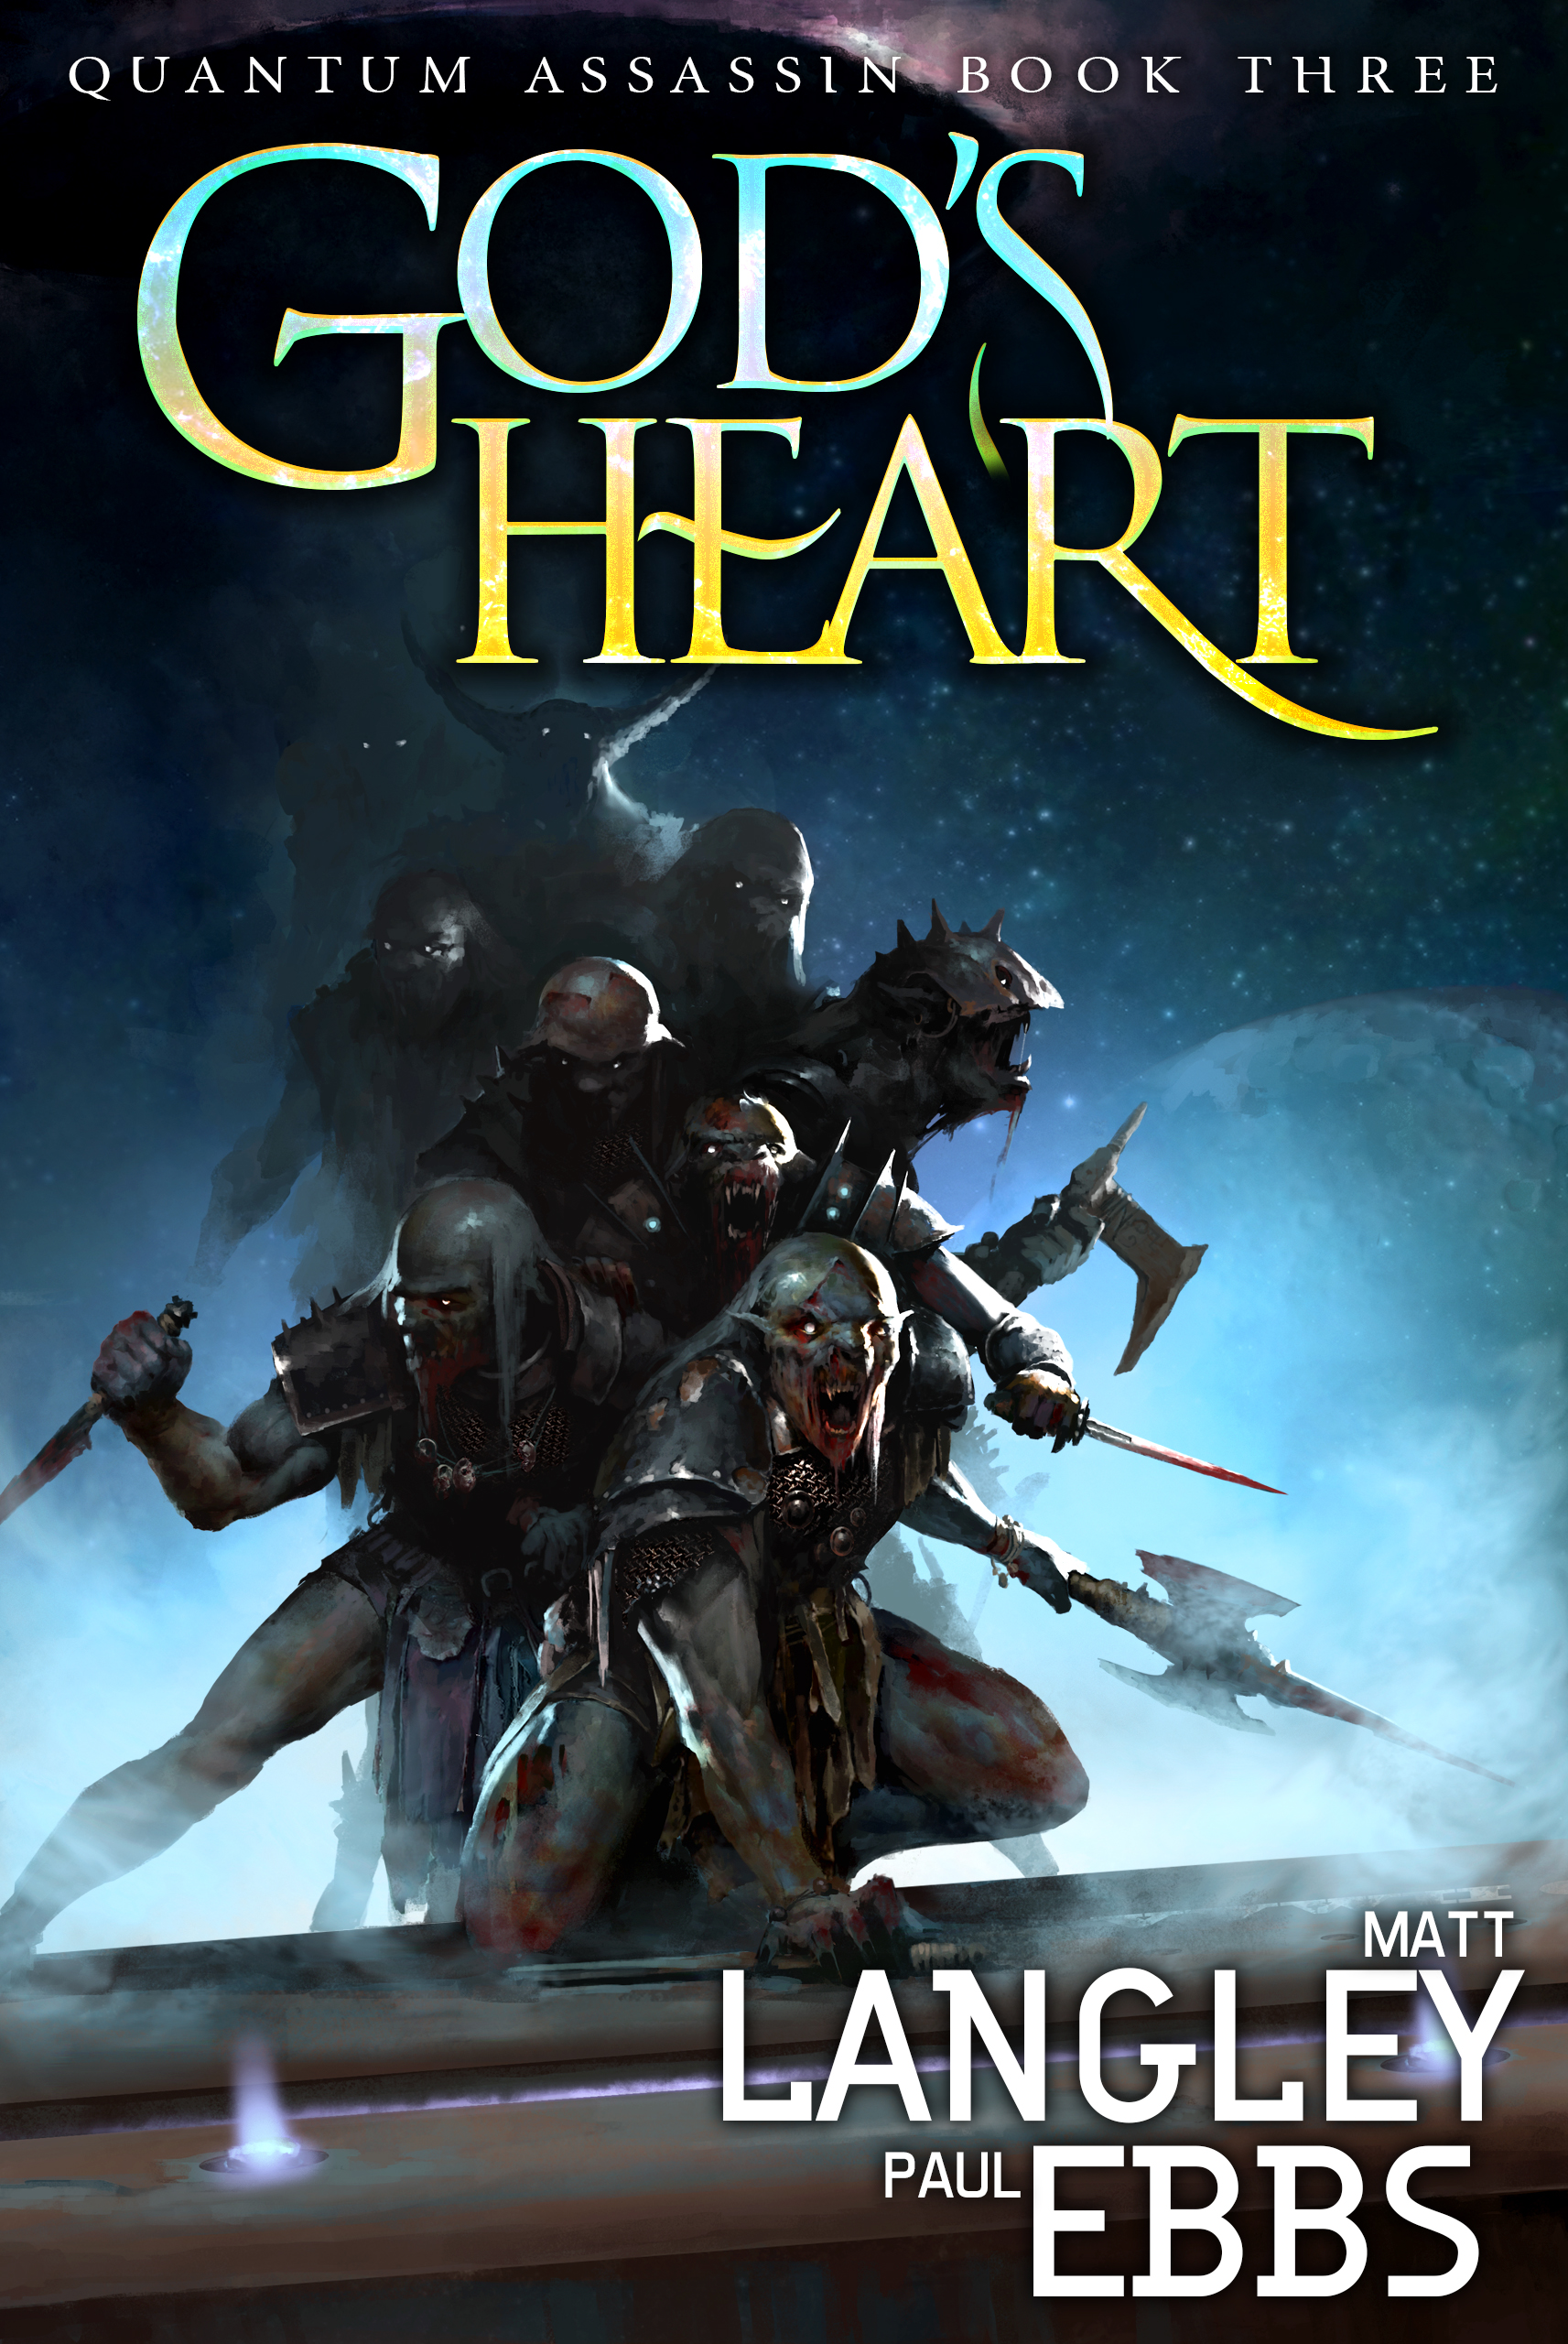 God's Heart   Quantum Assassin Book 3  Matt Langley, Paul Ebs